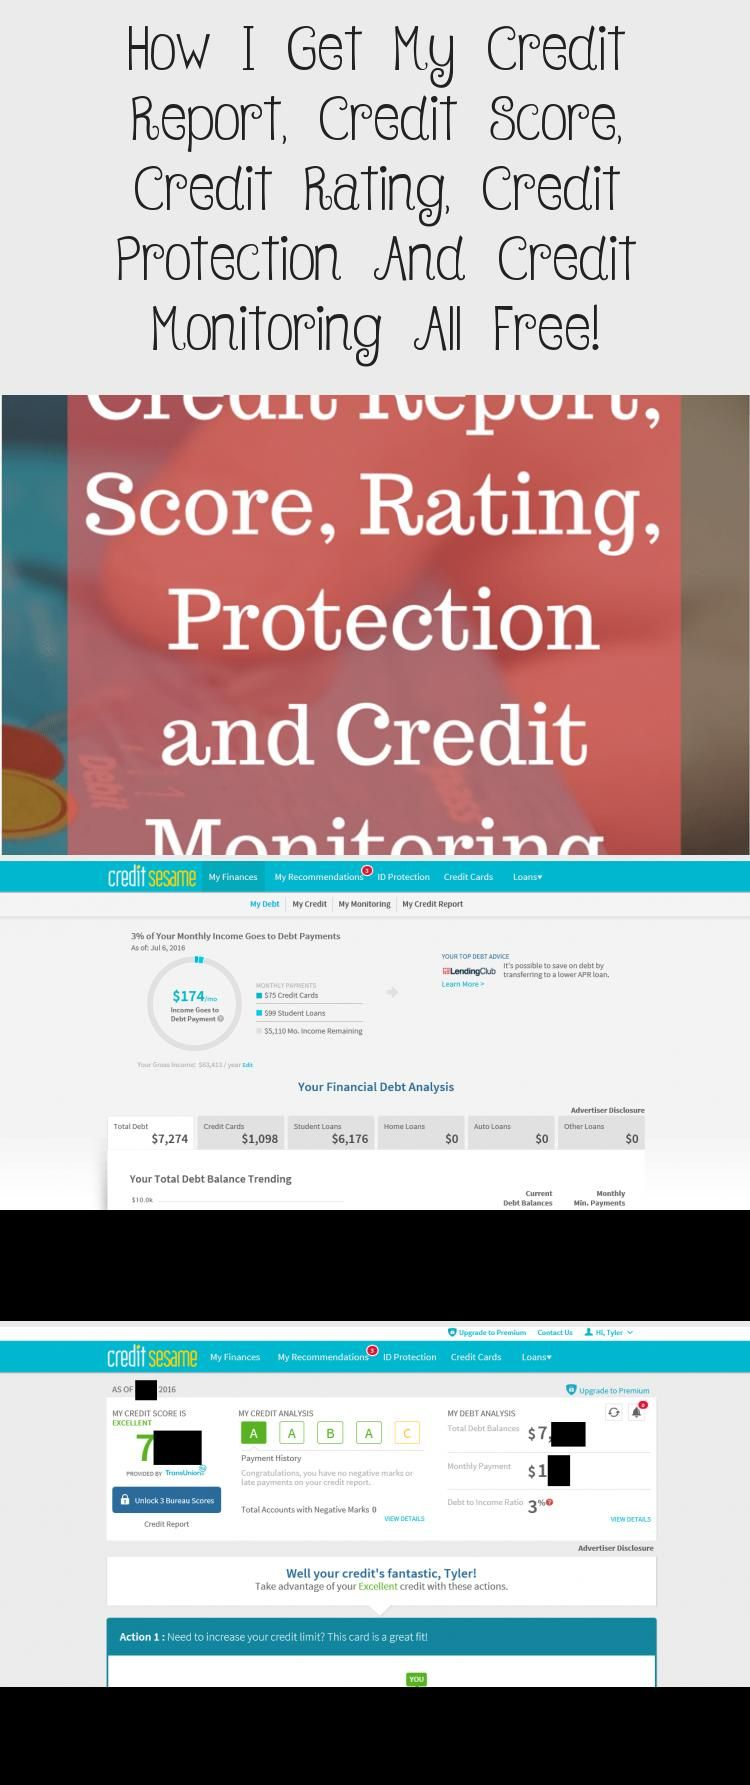 how to get free credit score report